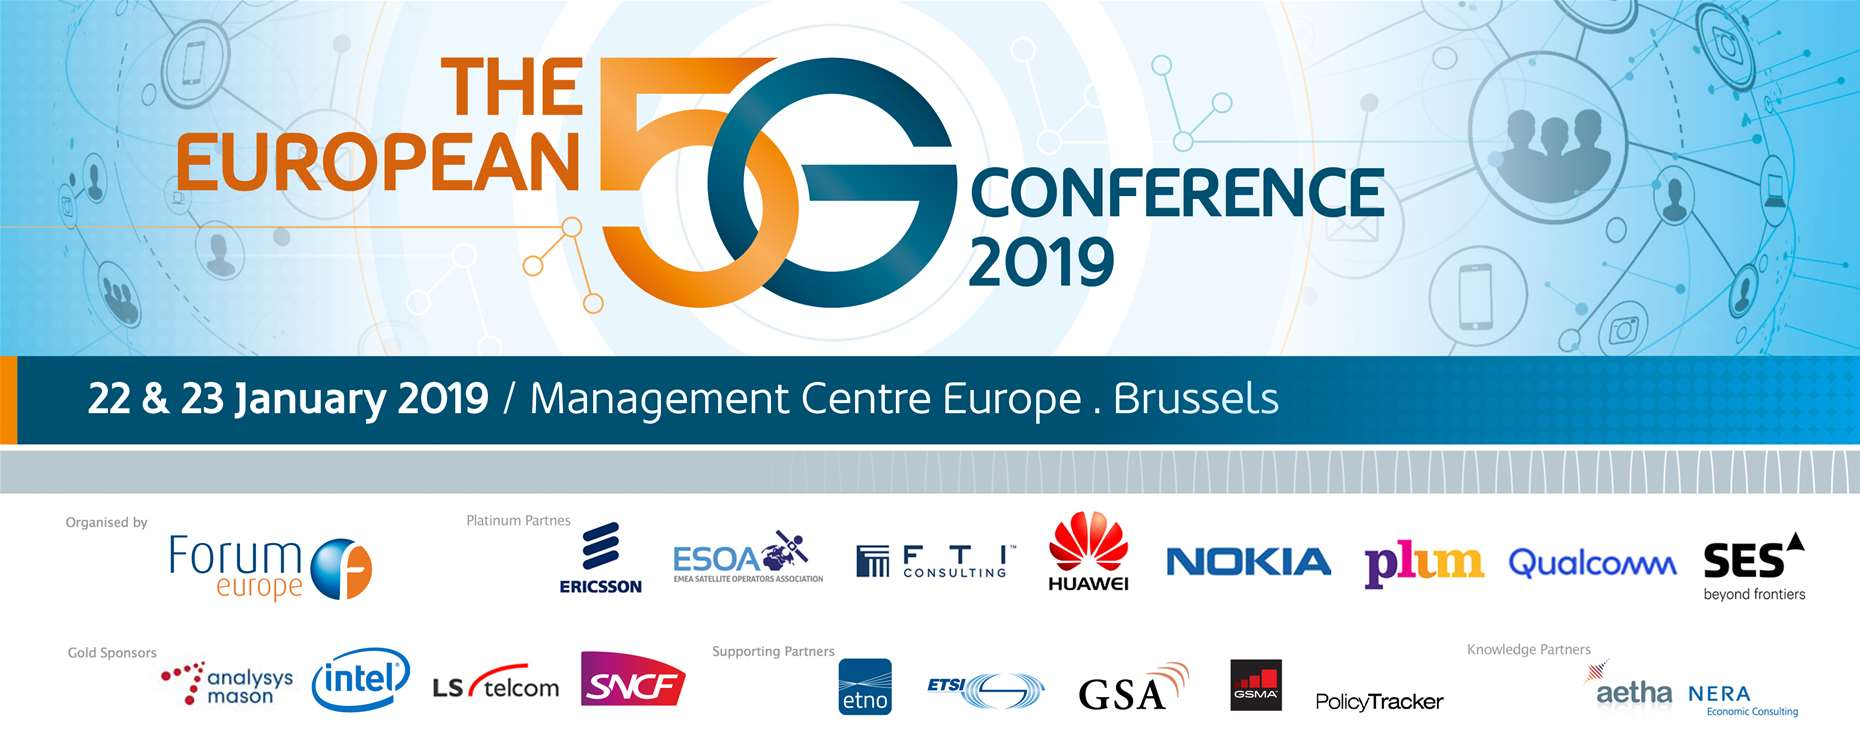 The European 5G Conference 2019 | Speaker Biographies